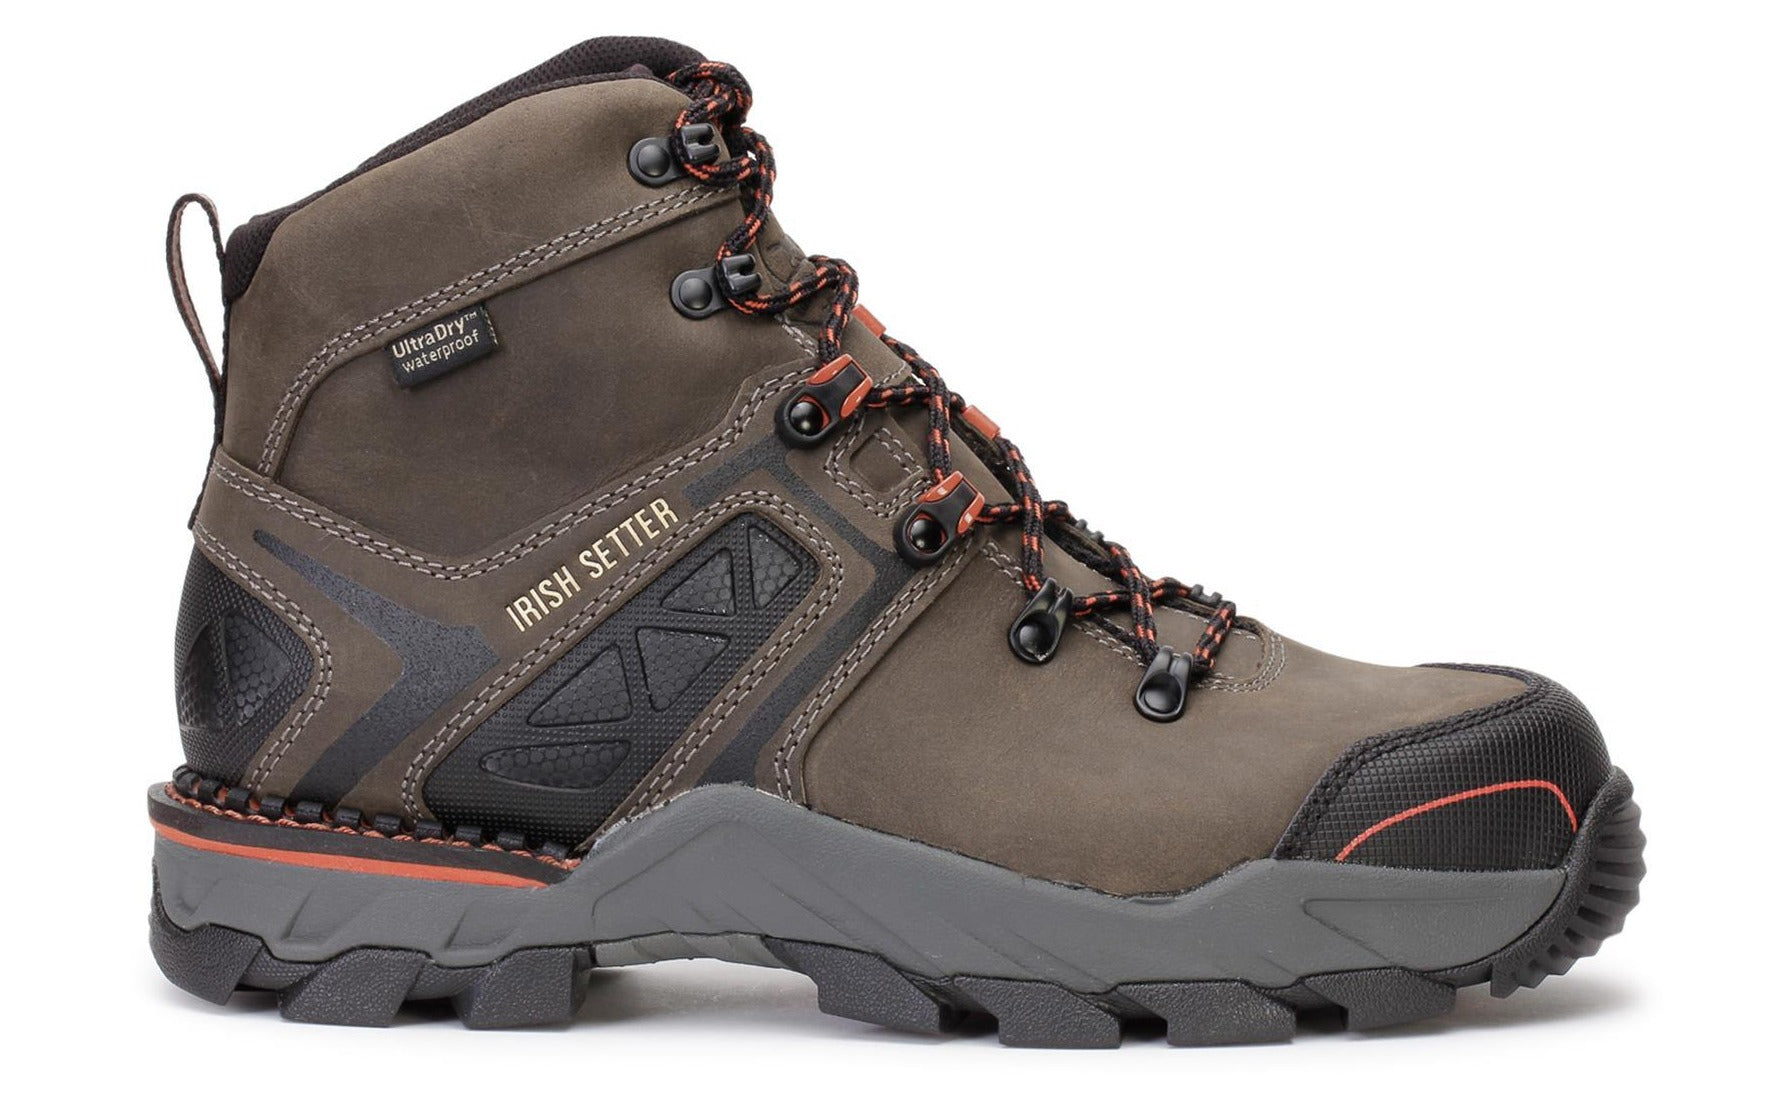 irish-setter-mens-6-inch-work-boots-crosby-safety-toe-gray-rust-83628-main